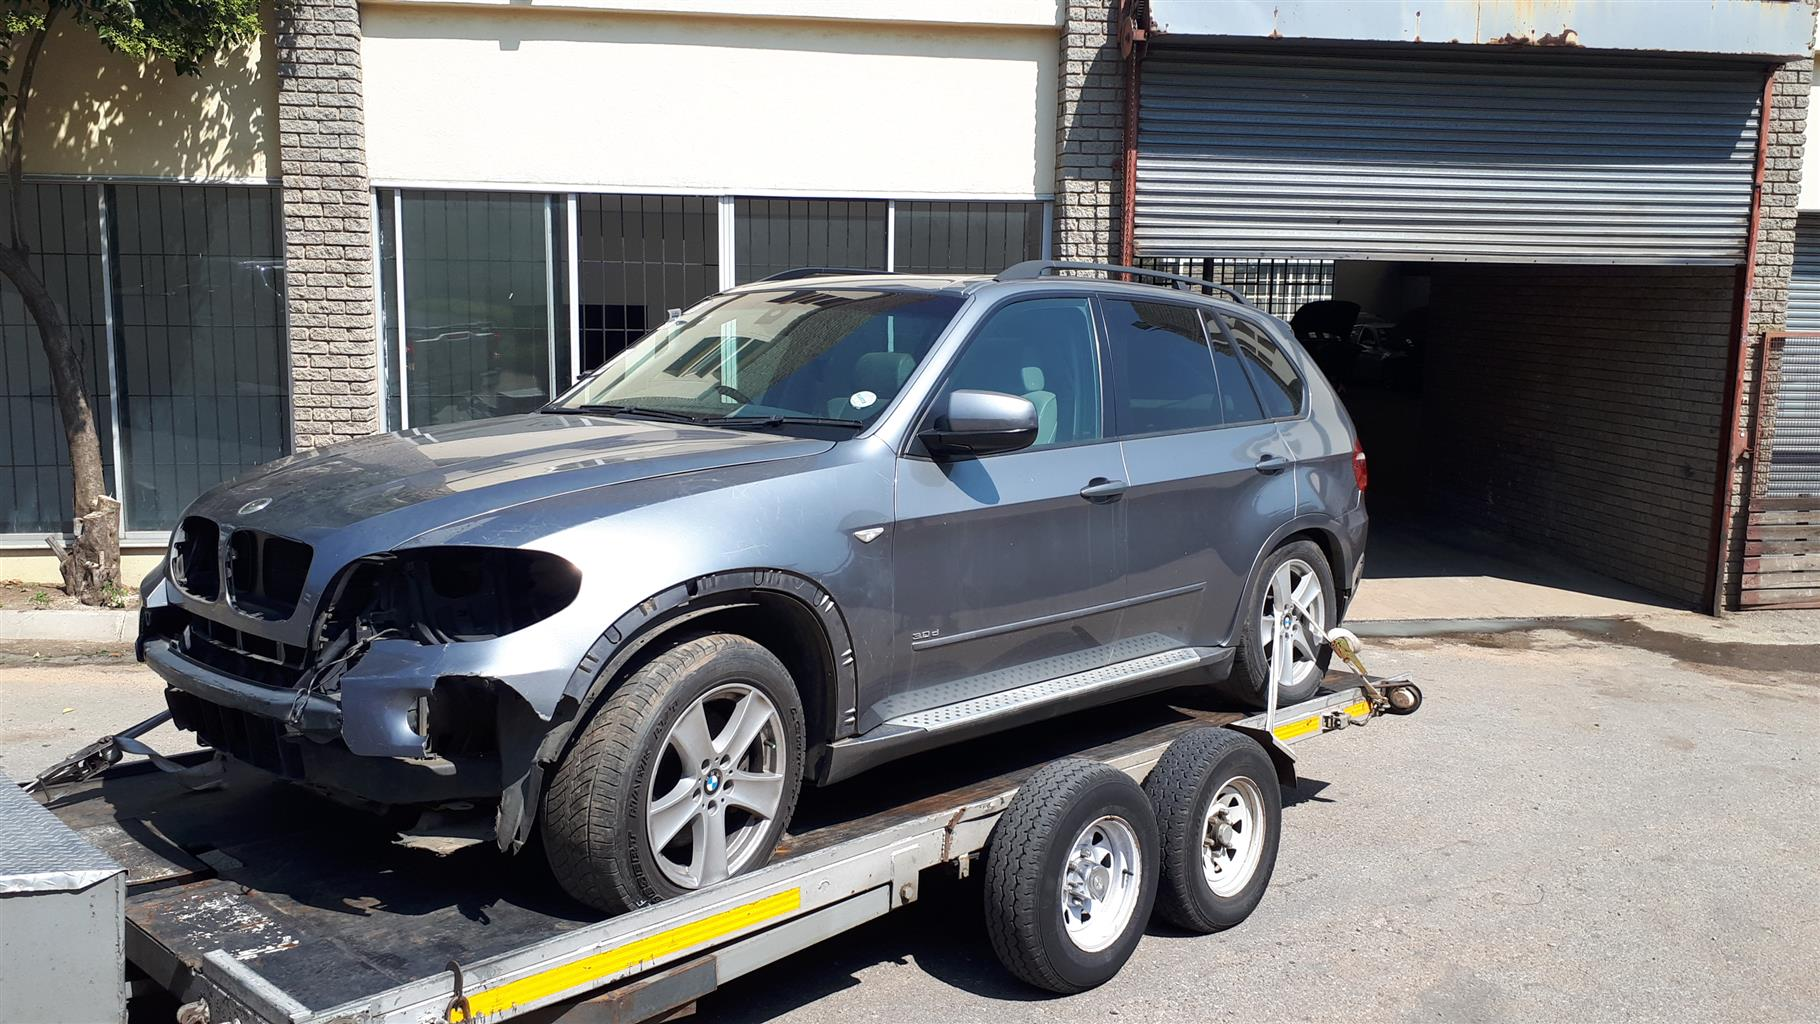 BMW X5 E70 3 0D Stripping for Parts / Spares | Junk Mail